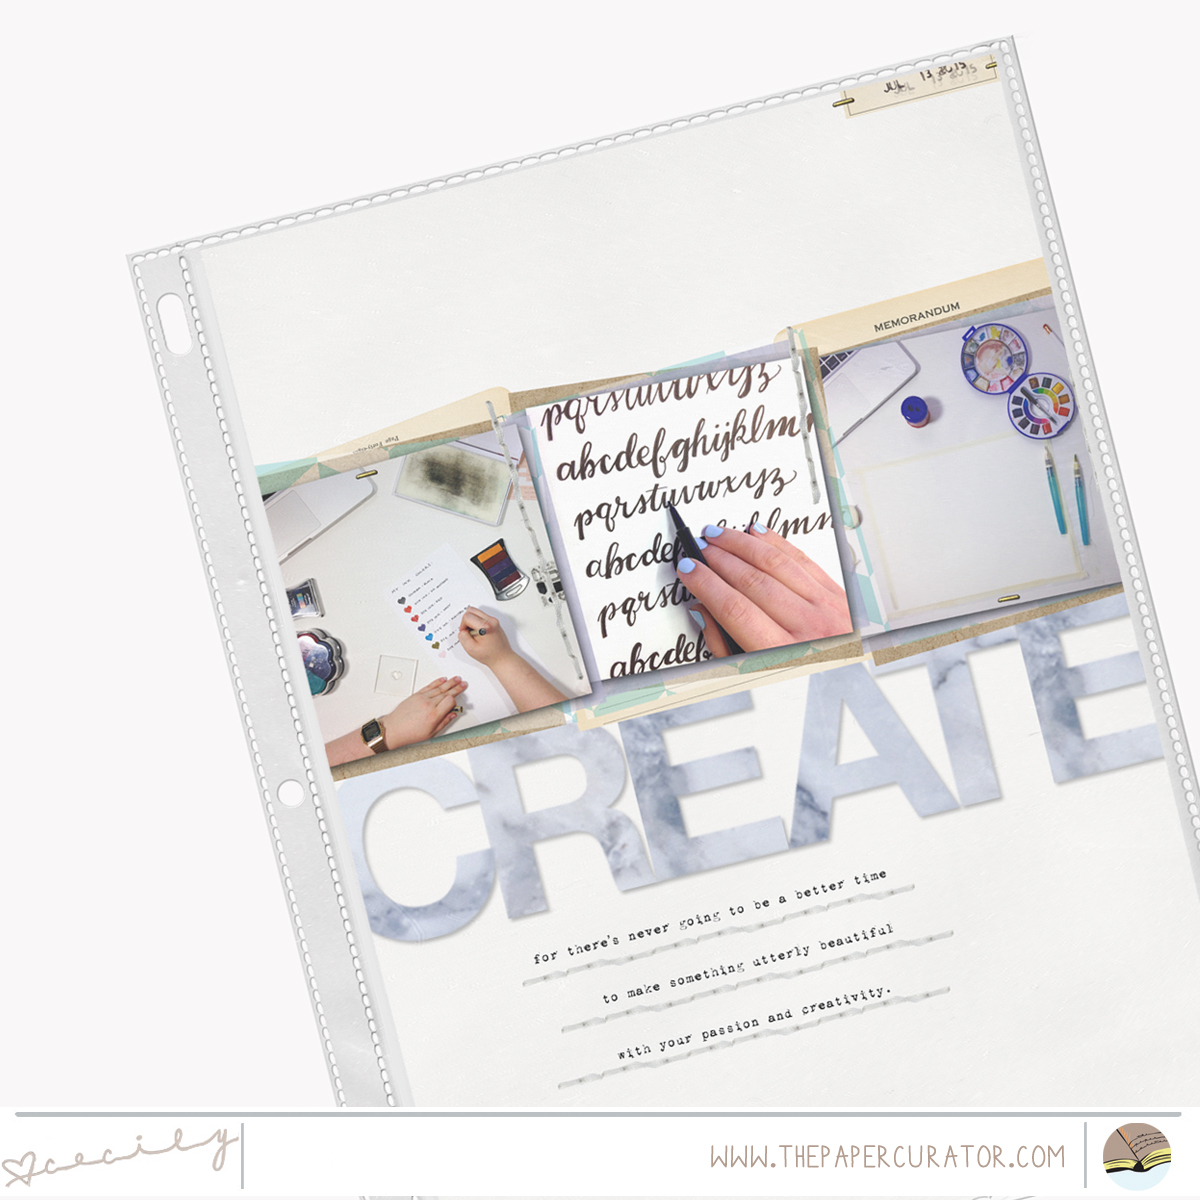 SUNDAY SKETCH SERIES NO. 33 WITH 'CREATE' SCRAPBOOK LAYOUT | THE PAPER CURATOR